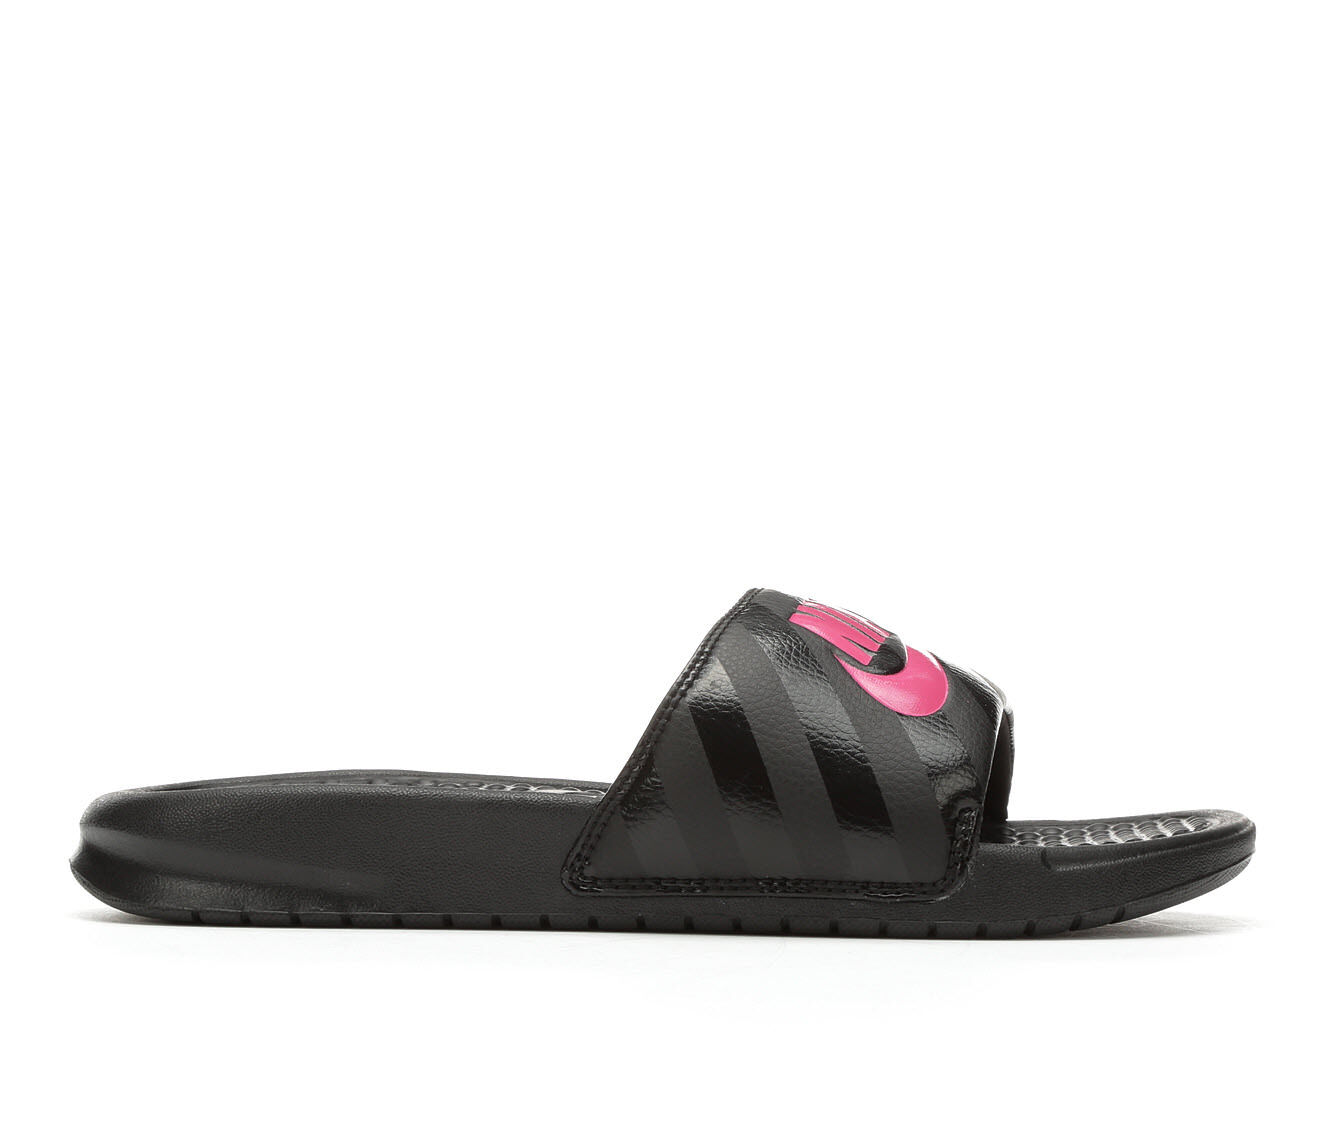 latest series Women's Nike Benassi JDI Slide Sandals Black/Pink